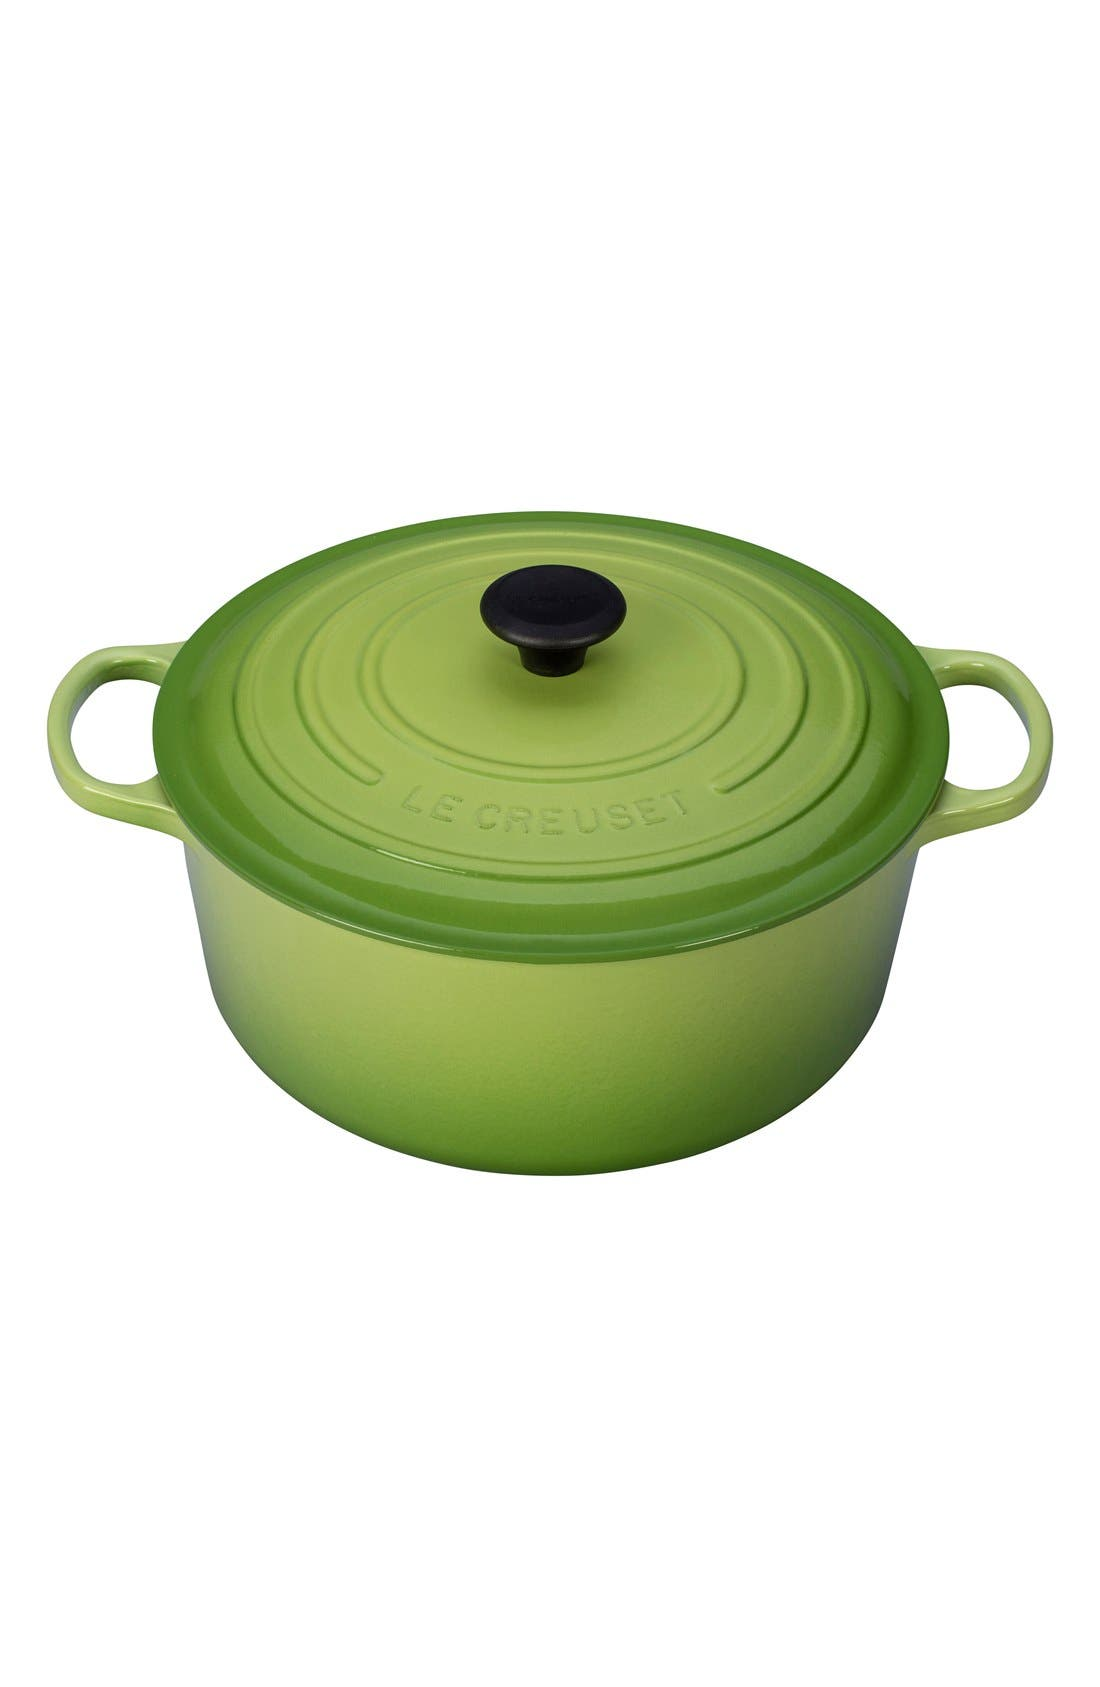 Le Creuset Signature 9 Quart Round Enamel Cast Iron French/Dutch Oven